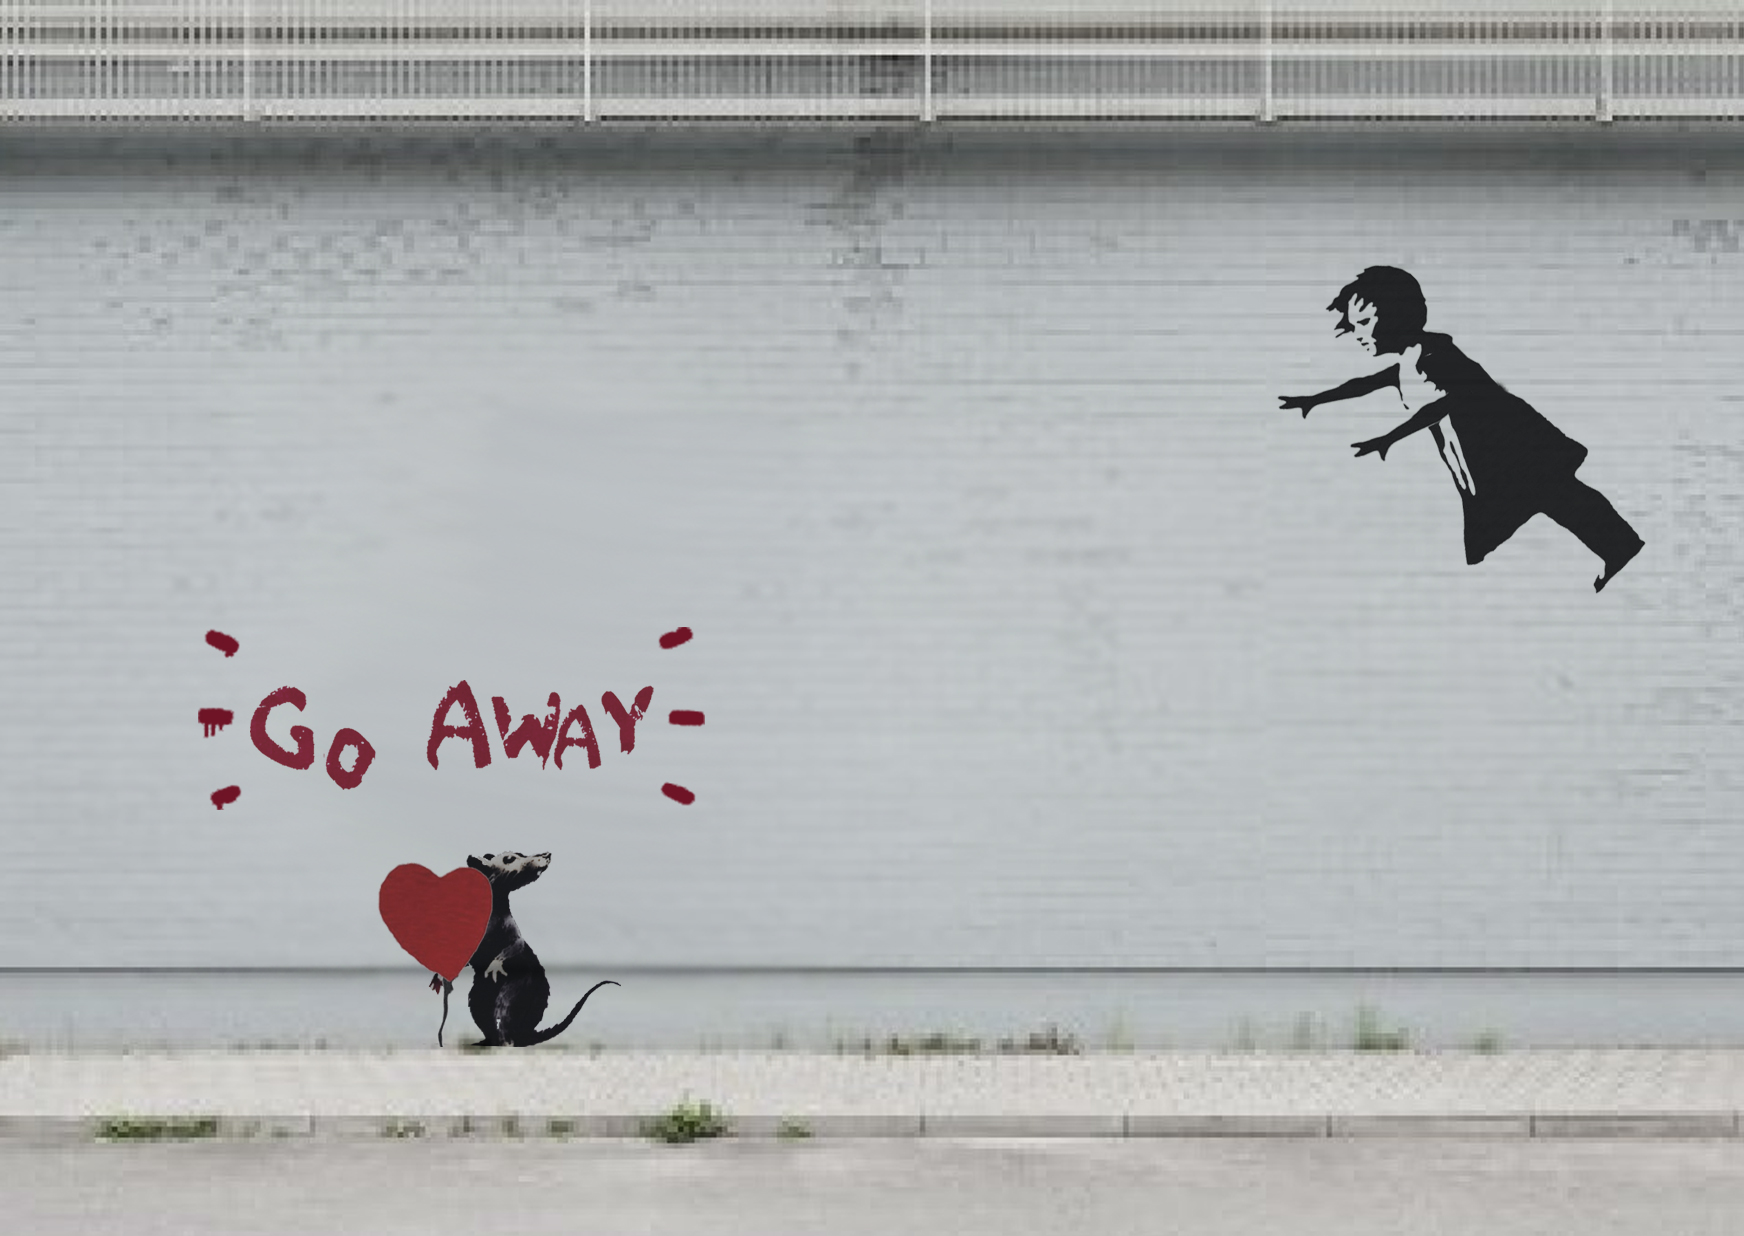 banksy-shot-spoof